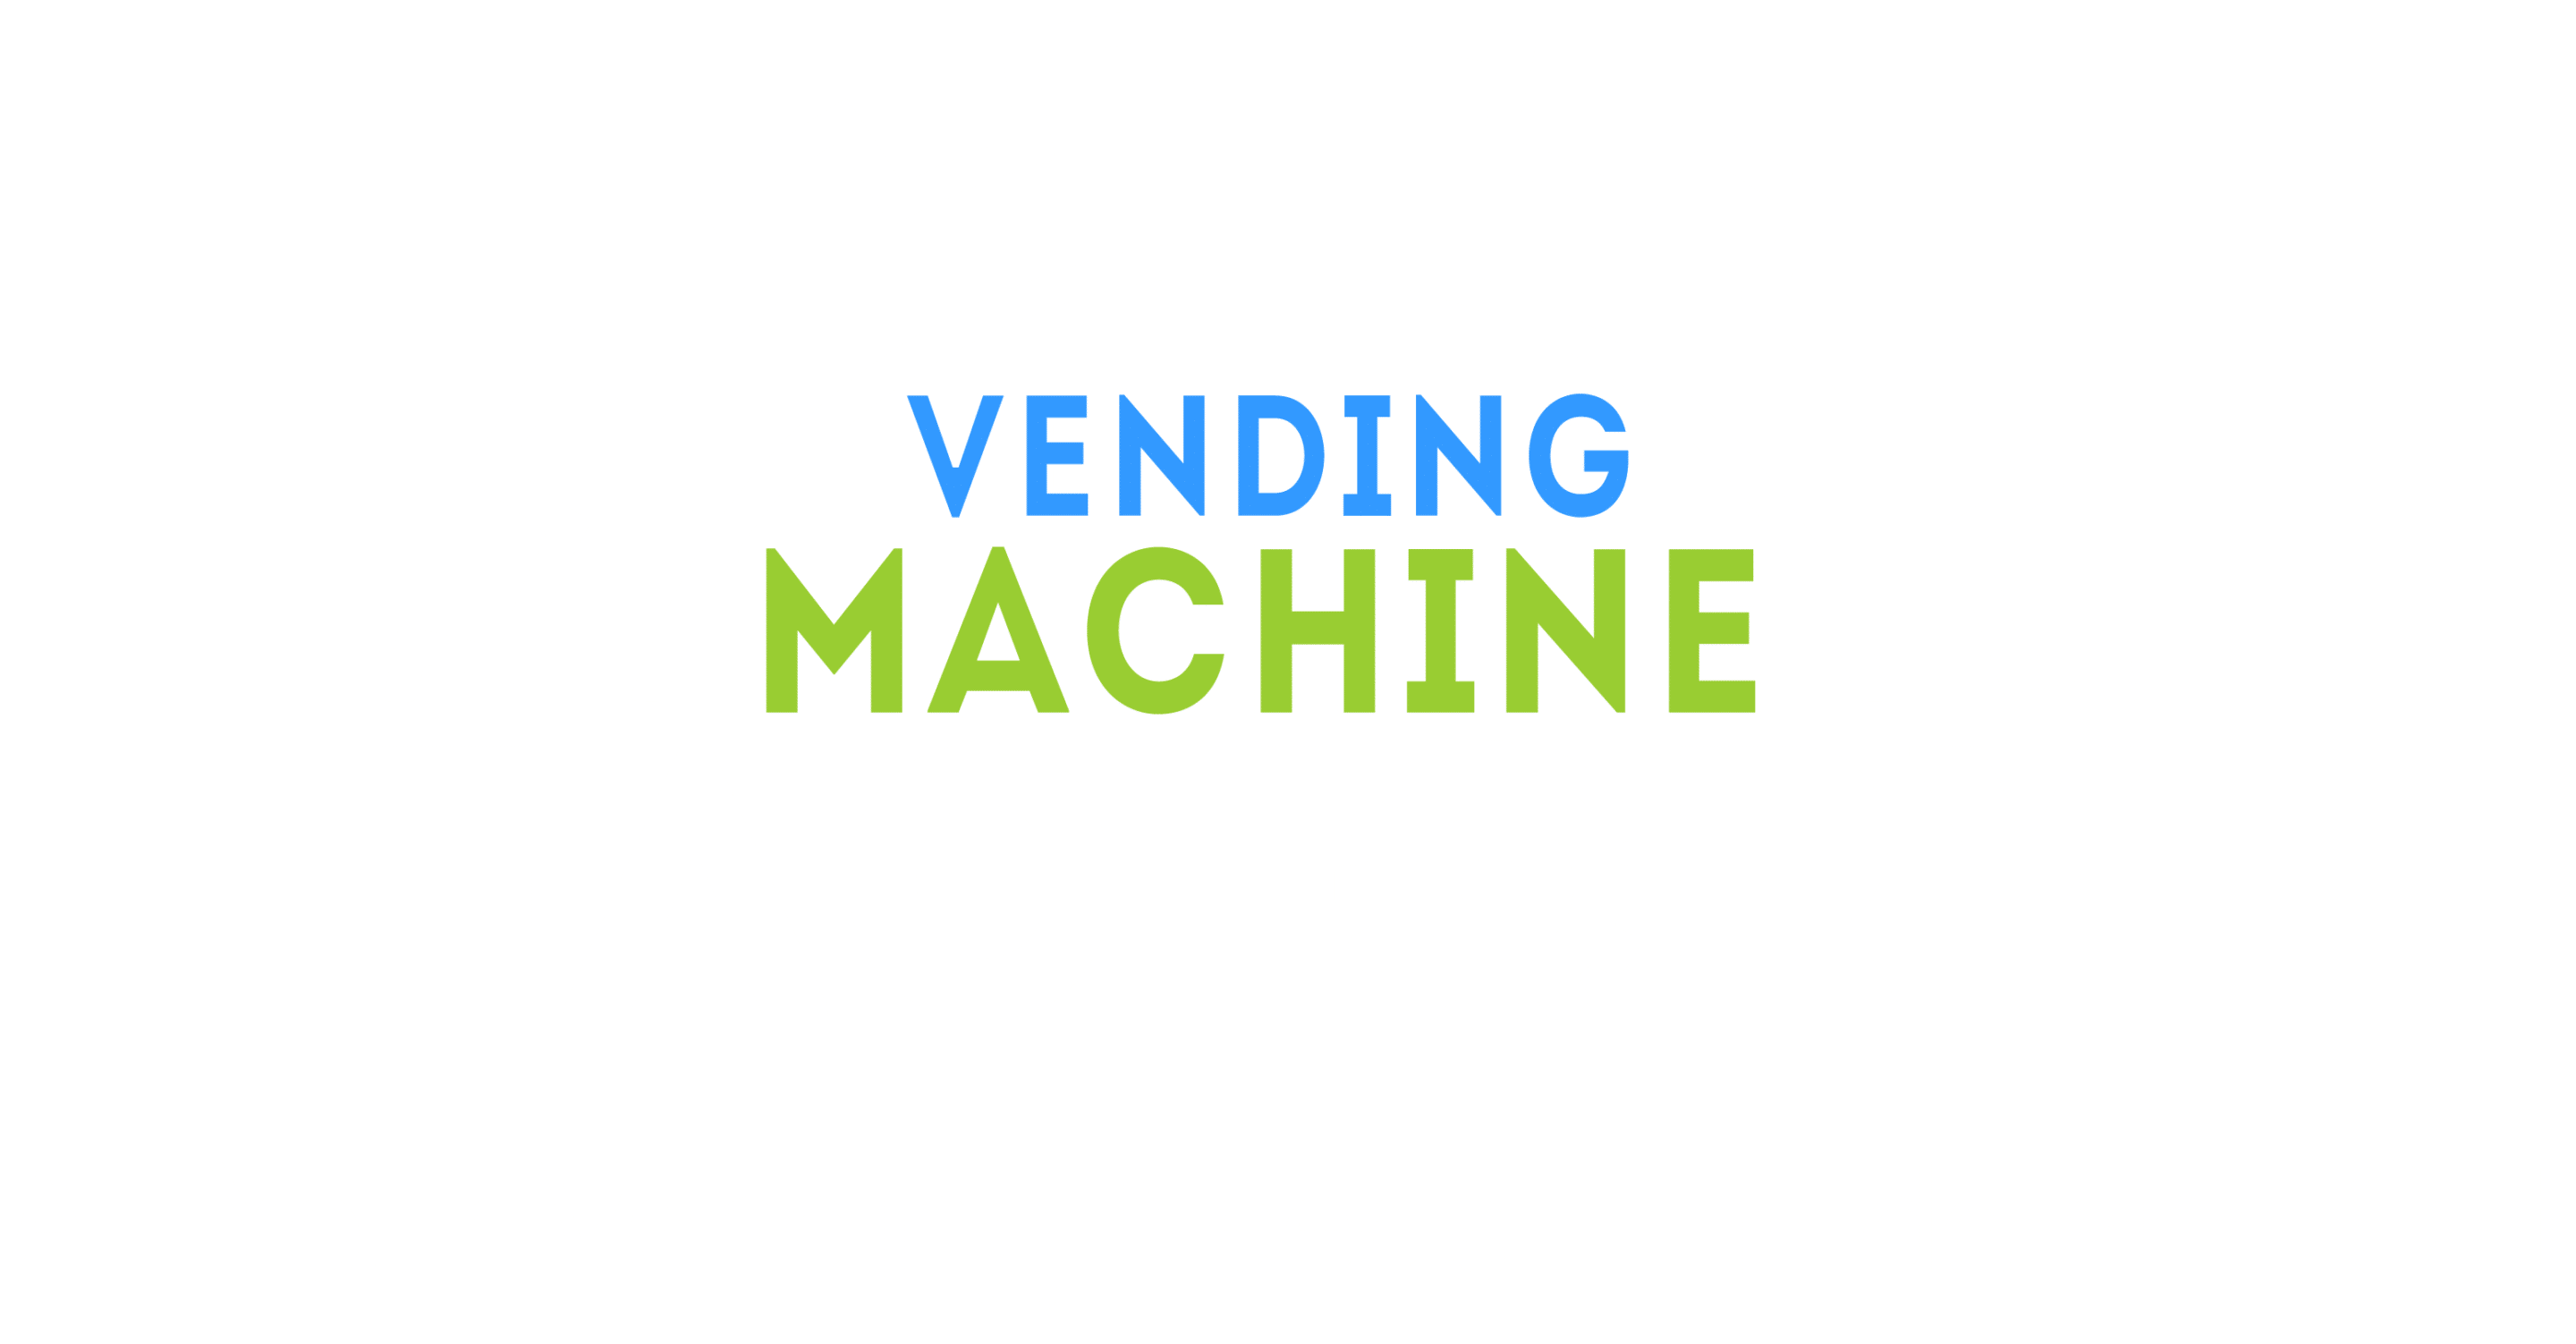 Vending Machine Factory